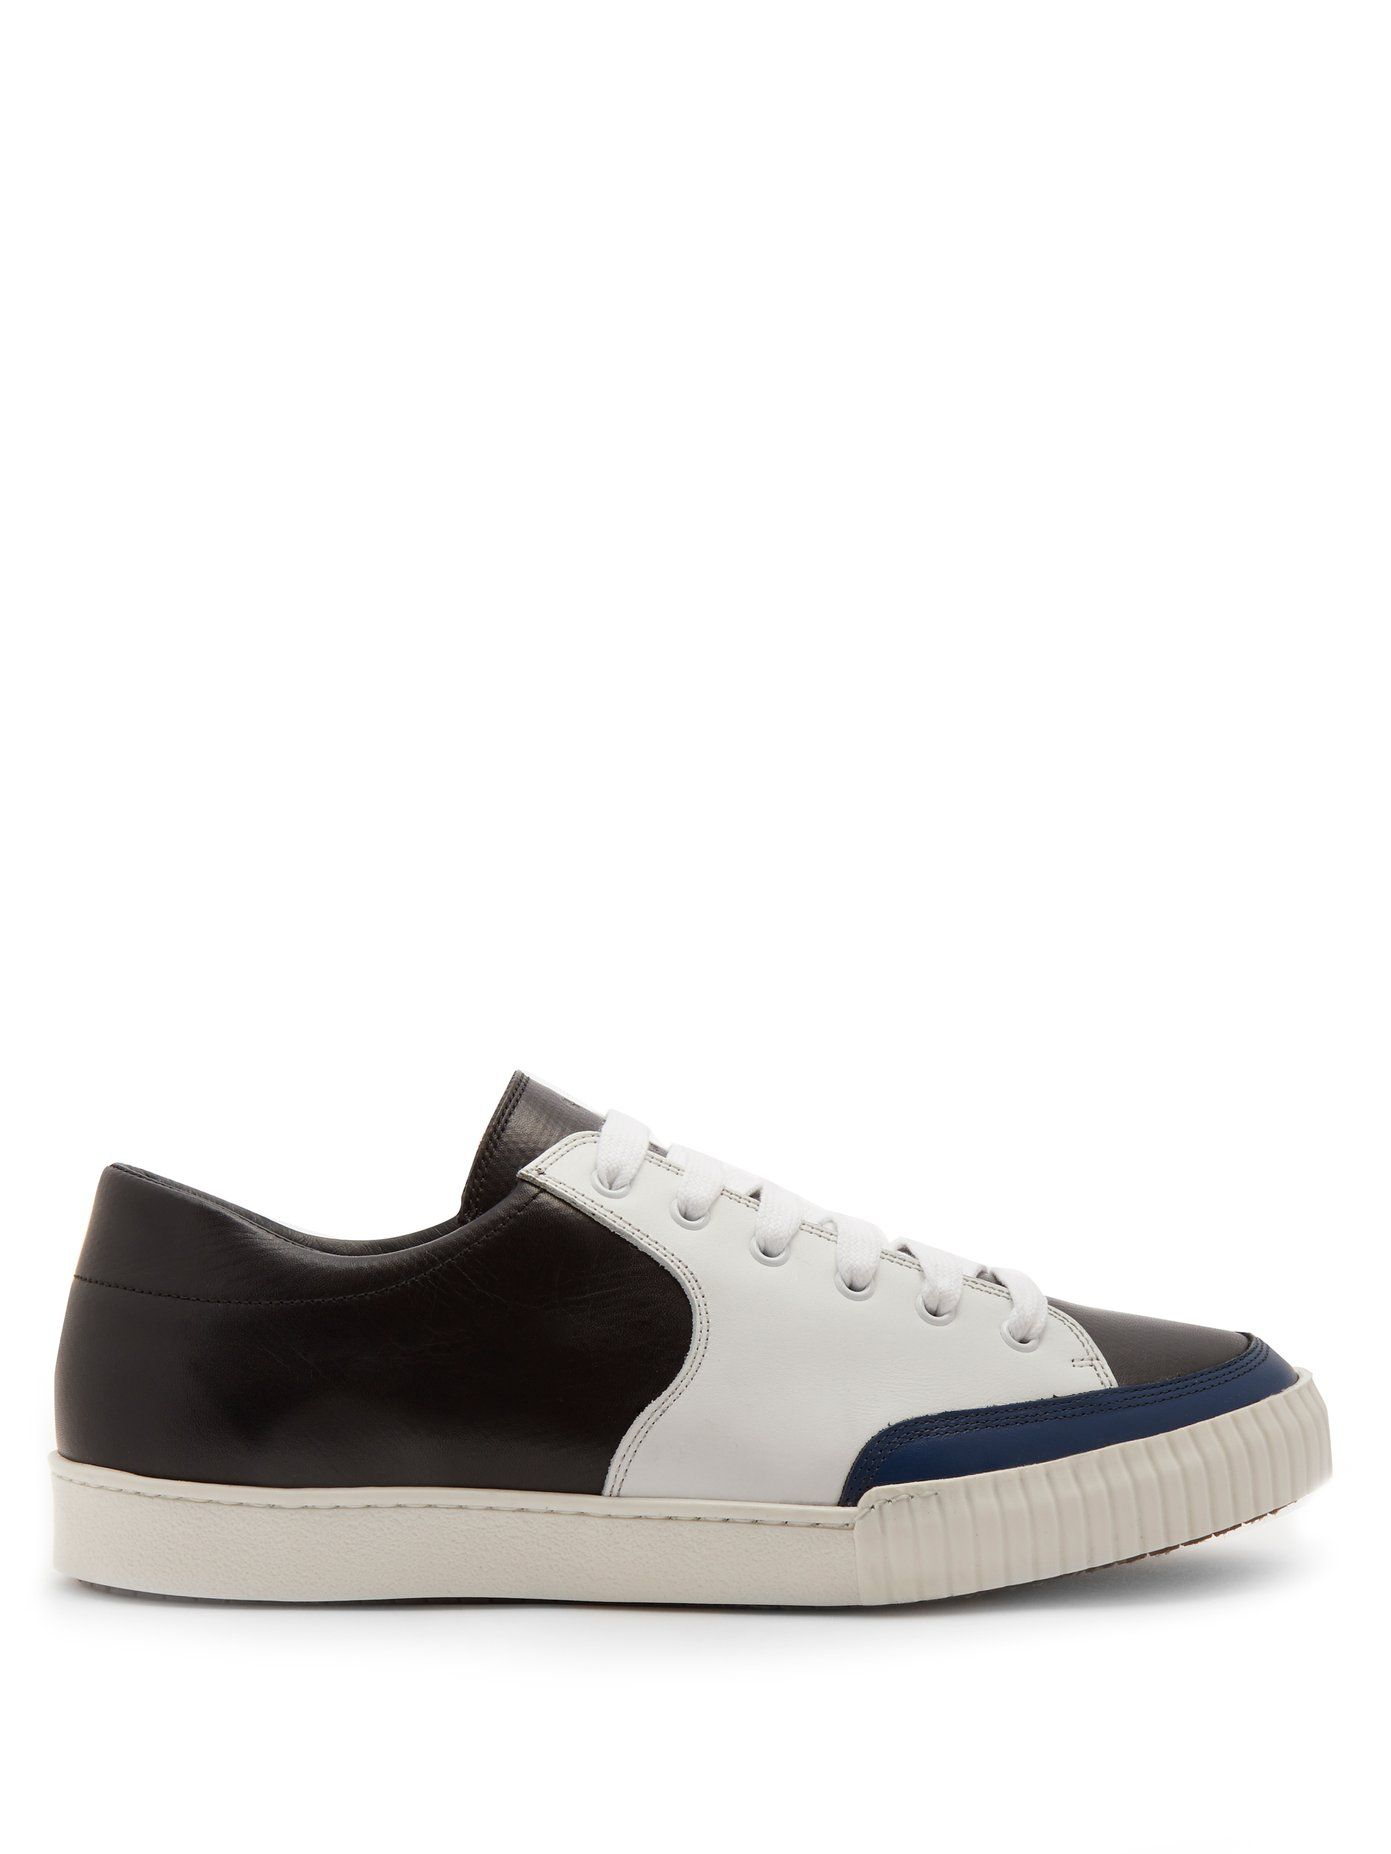 Pin by matt willis on Trainers | Sneakers, High top sneakers